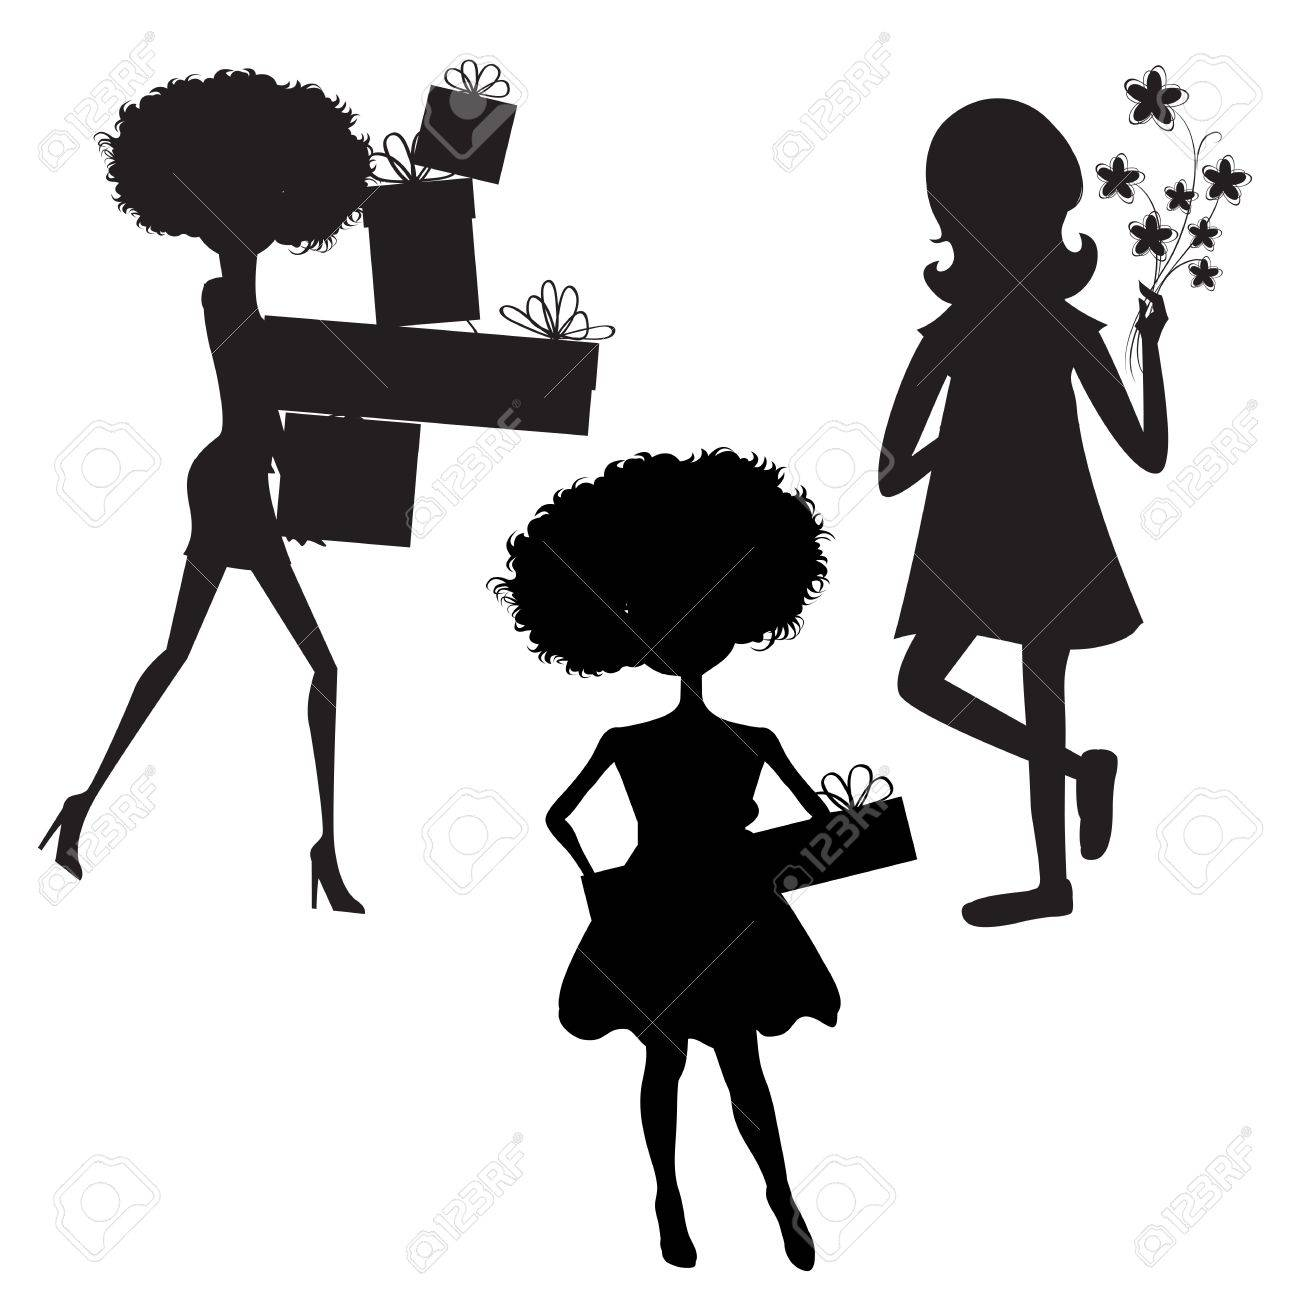 set of three girls silhouettes at birthday party isolated on white background, vector illustration Stock Vector - 20169291